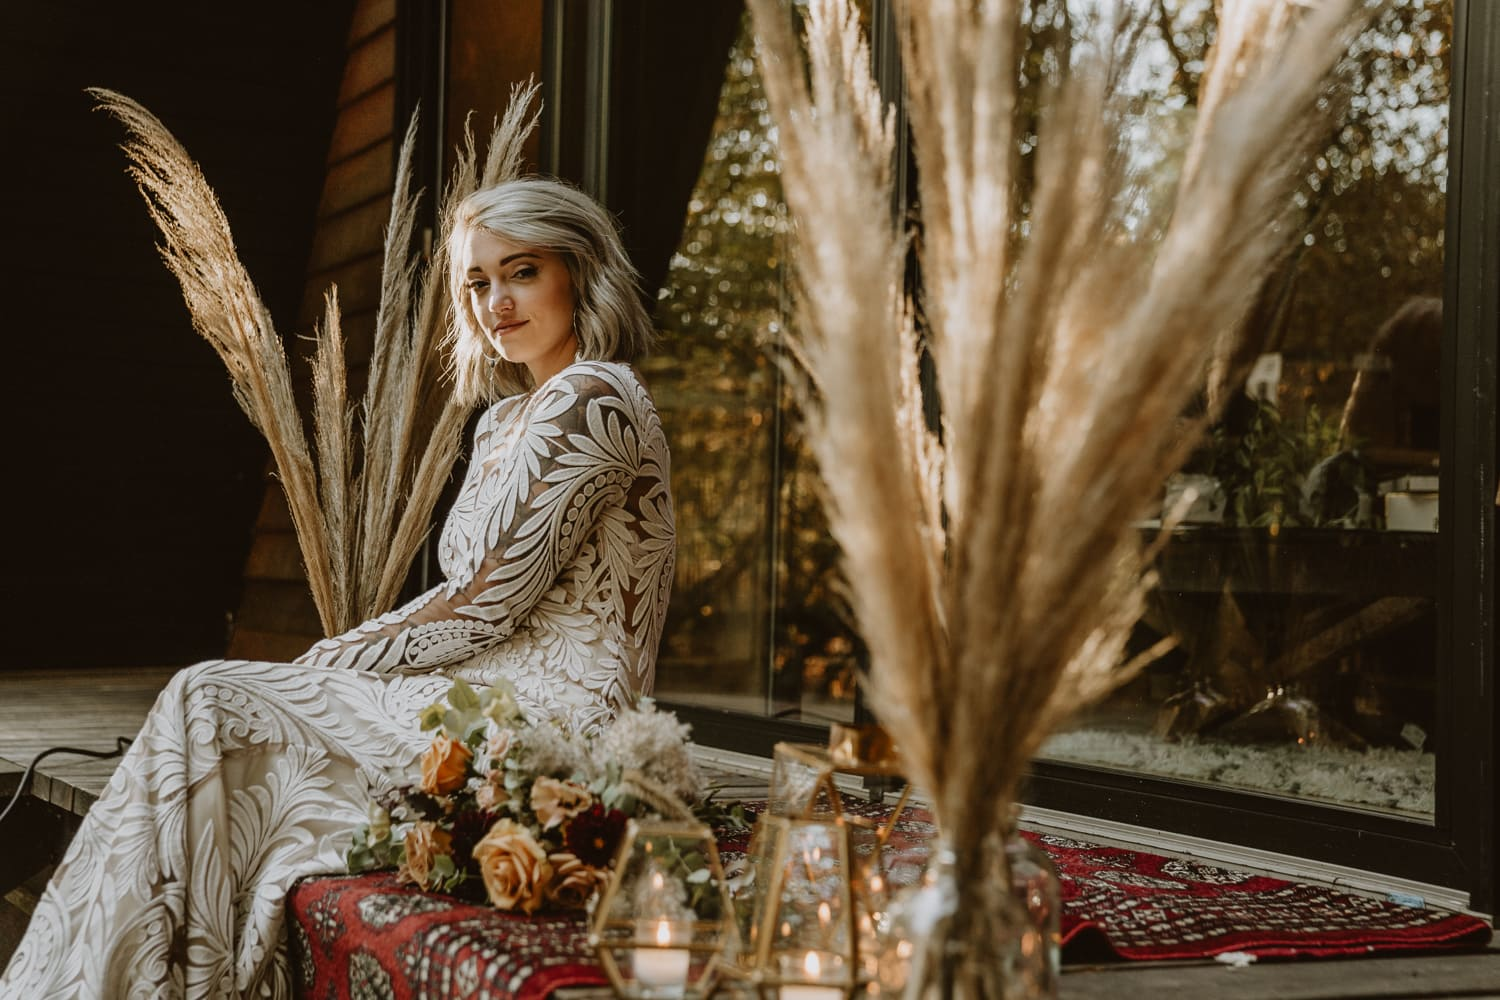 Bride poses next to her elopement decor. Bohemian decor with pampas grass and candles was high on her elopement checklist